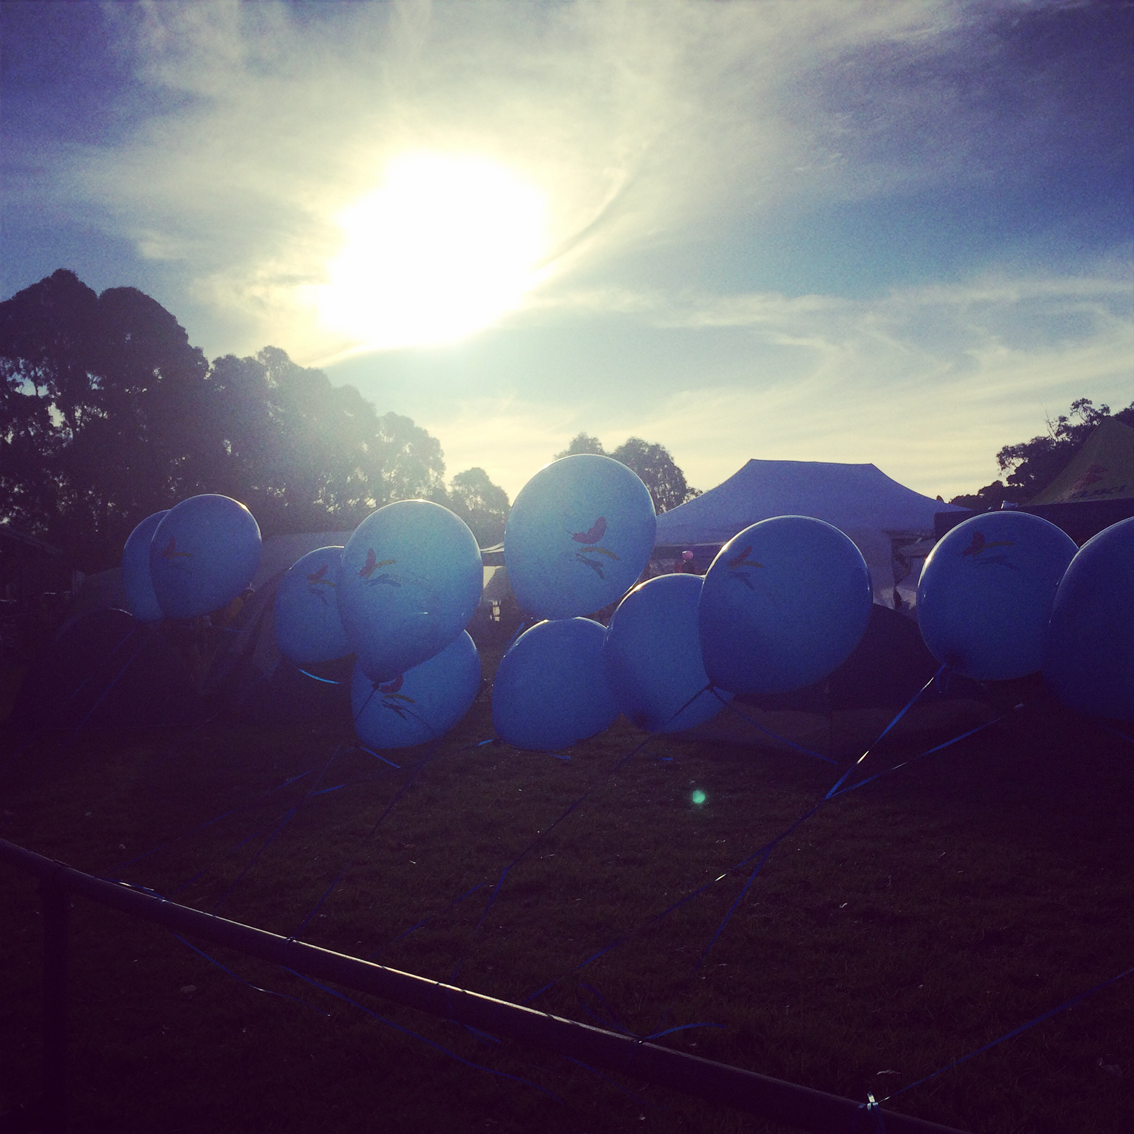 Blue balloons line the course in Berwick.